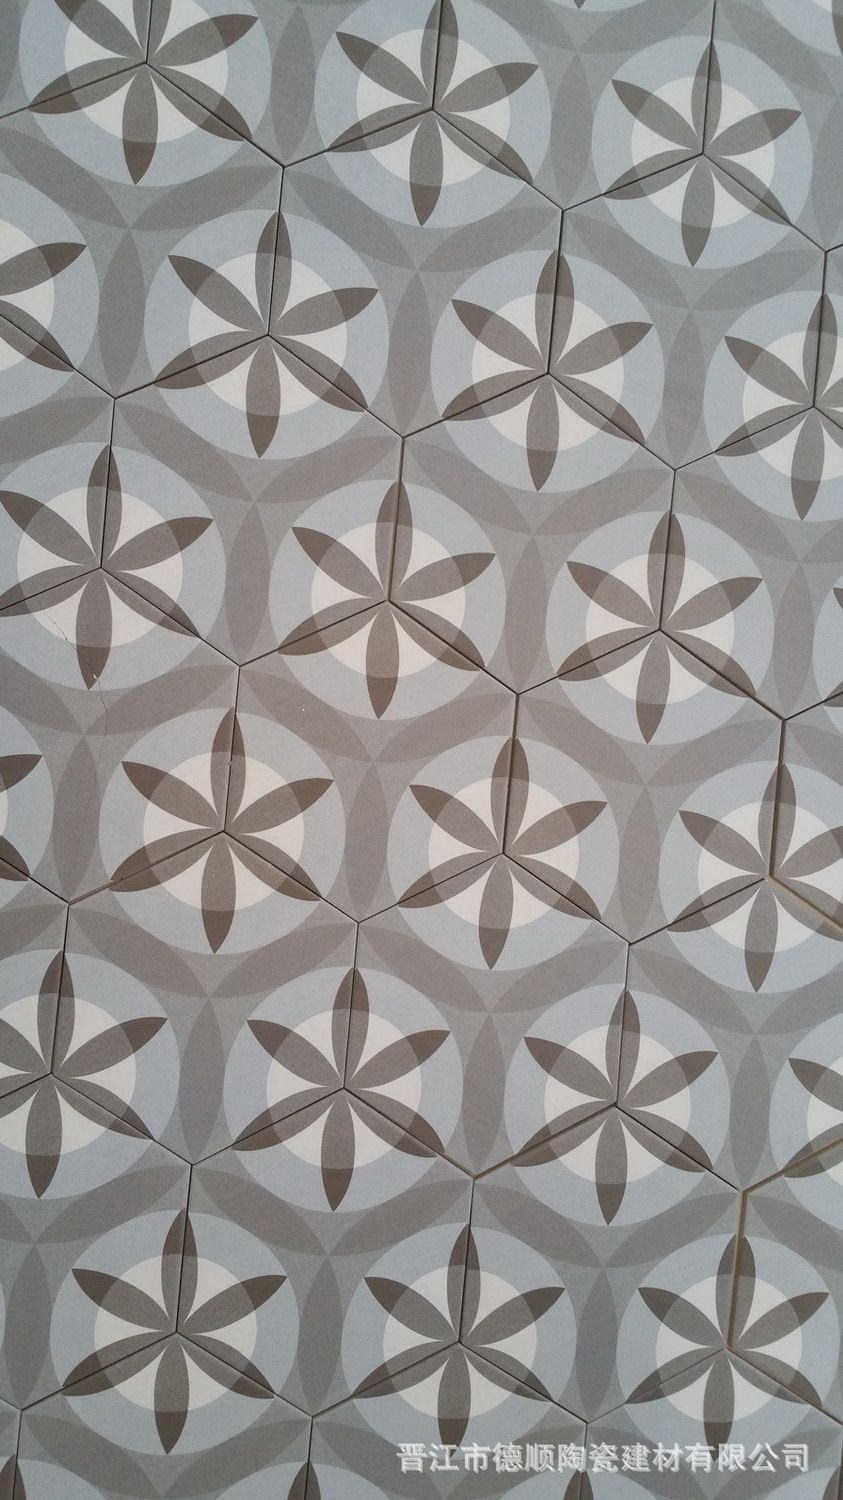 Mosaik Fliesen Zement Hexagonal Brick Tile Cement Retro Old Shanghai Hexagonal Tile